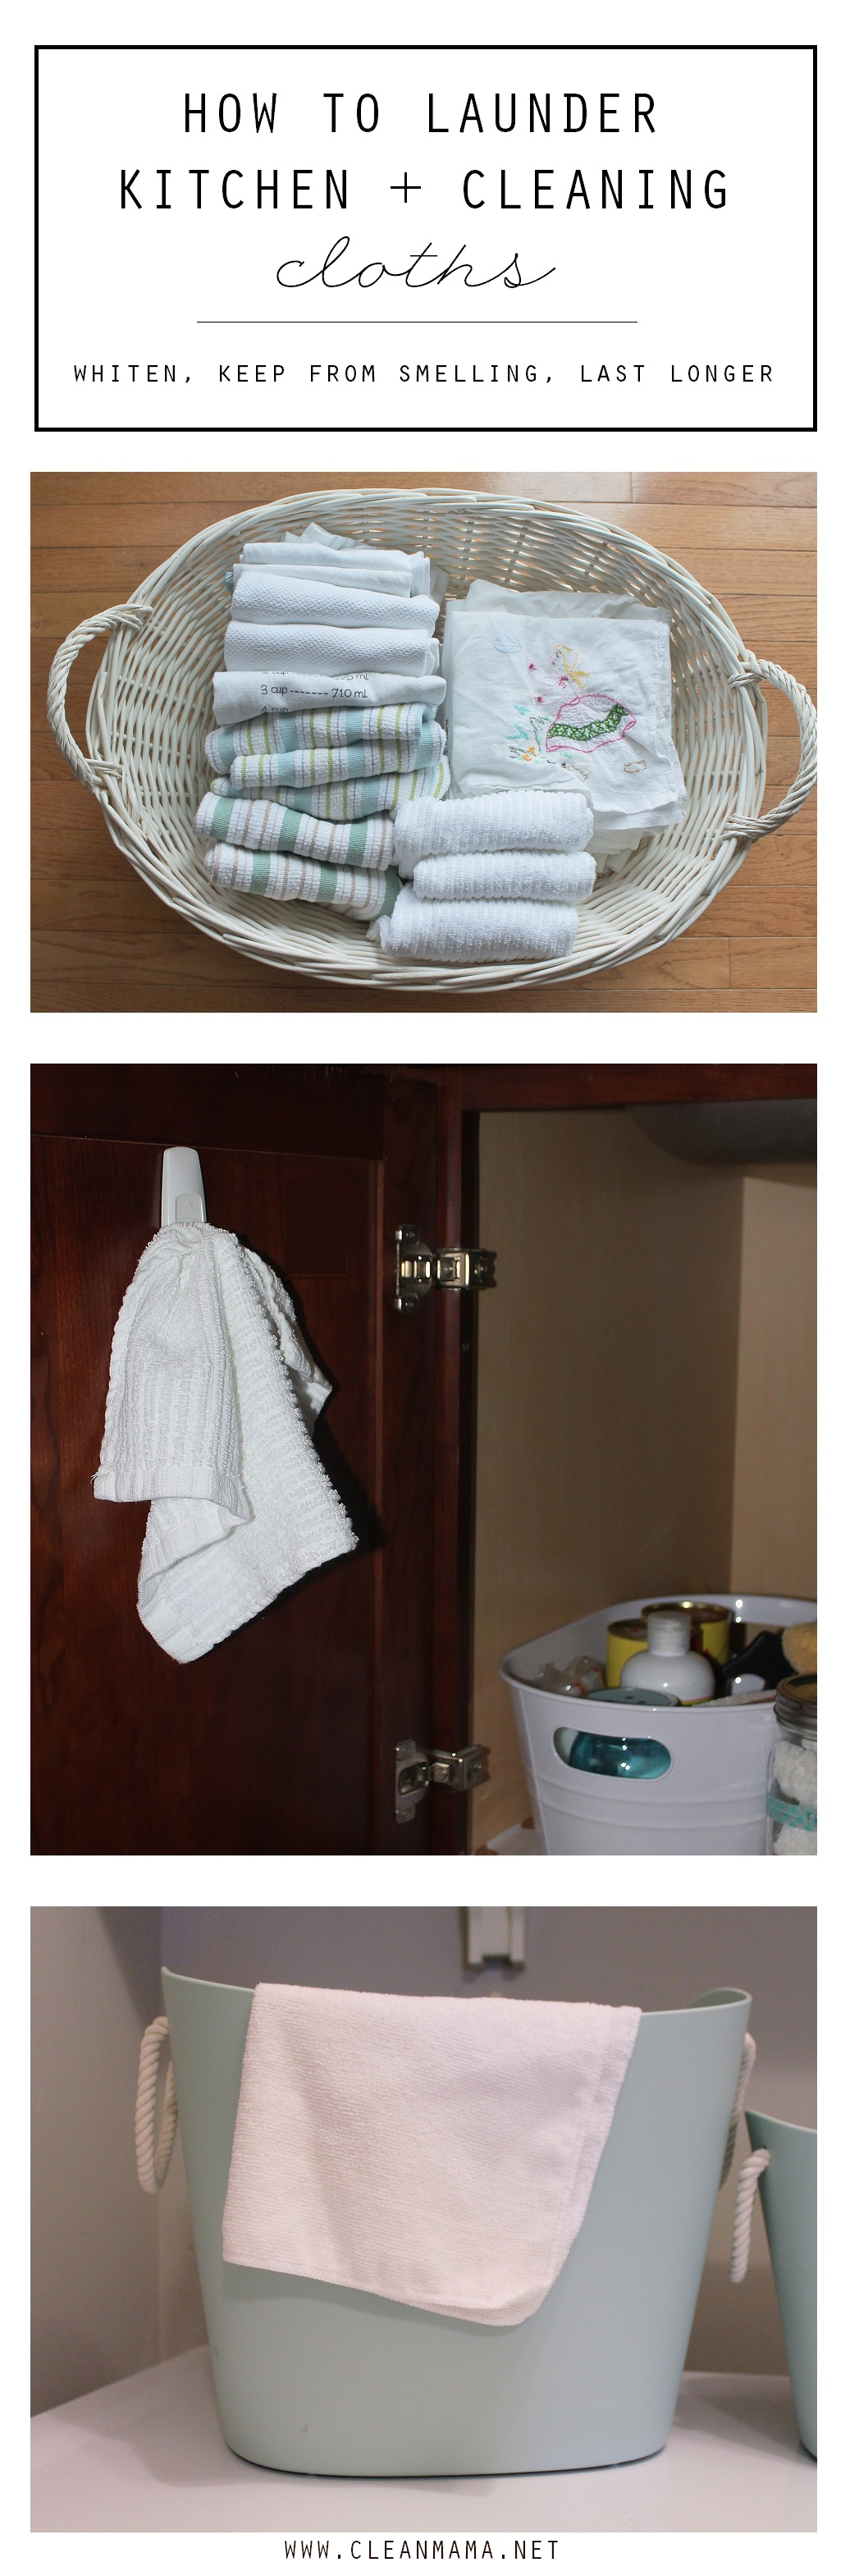 How to Launder Kitchen and Cleaning Cloths via Clean Mama